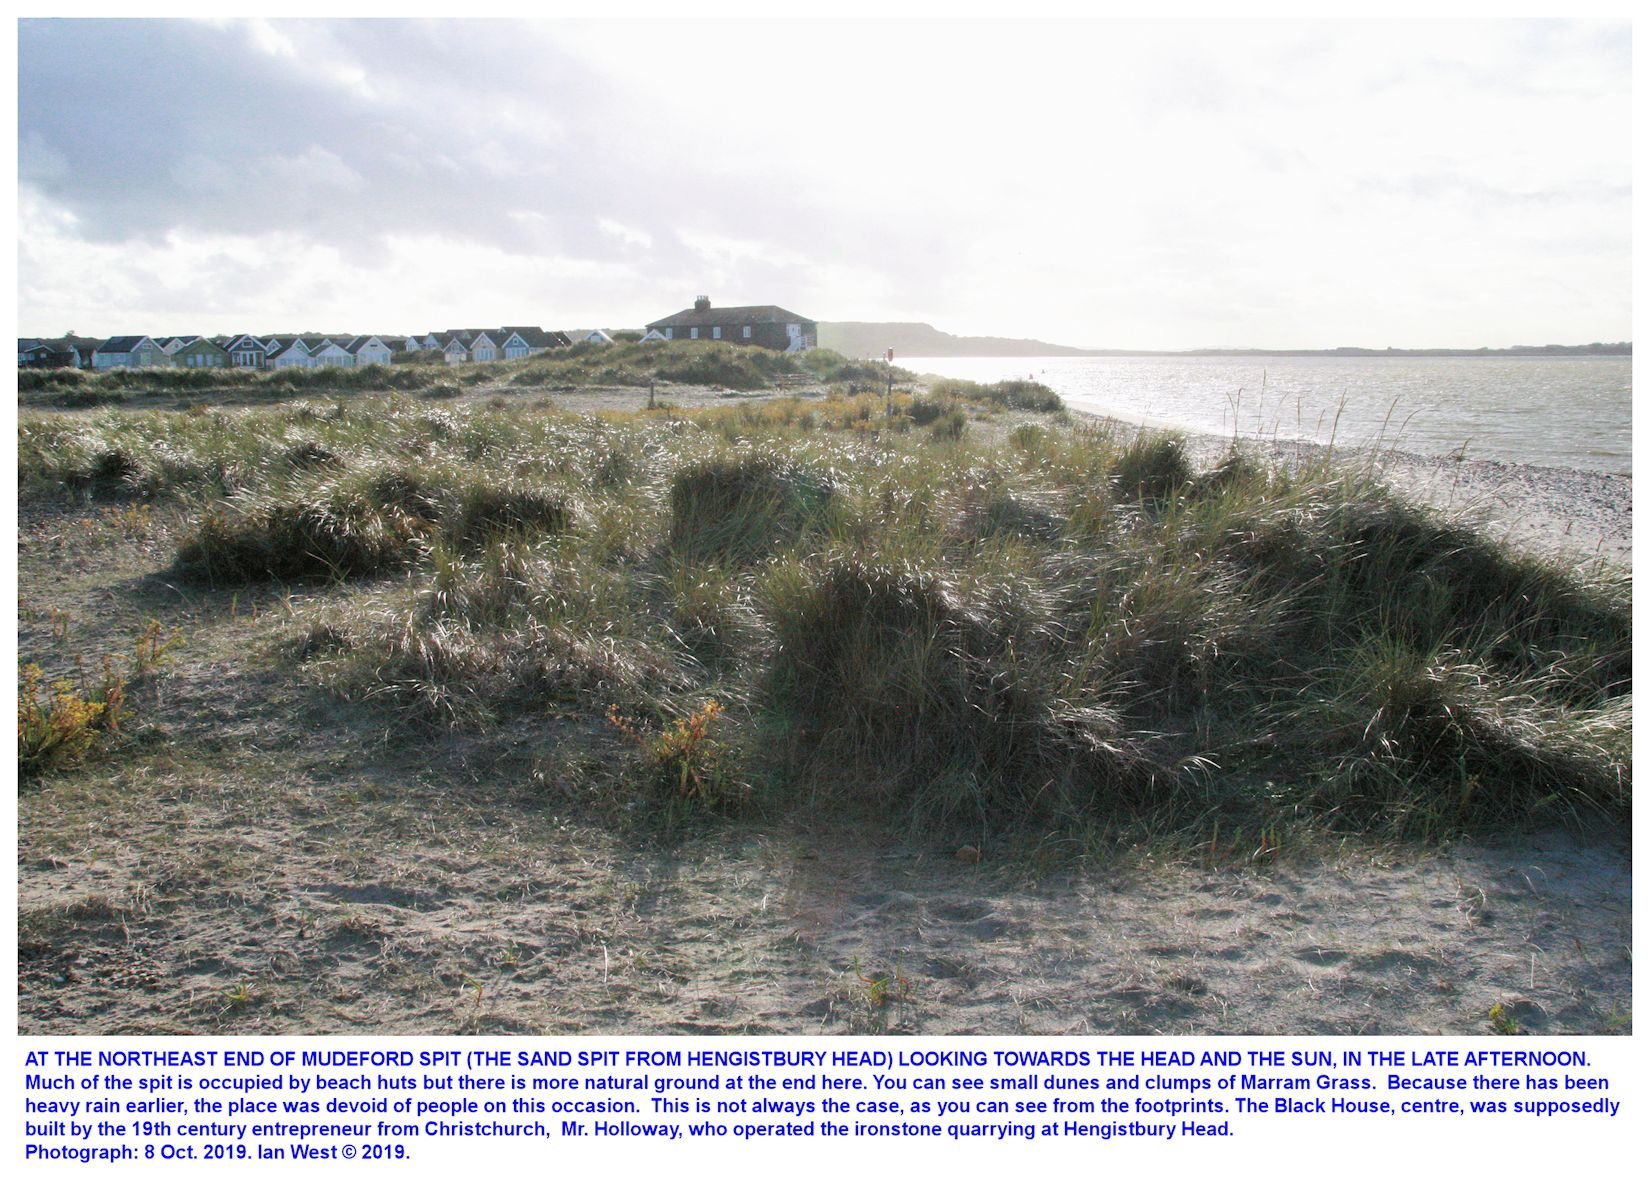 The far north-northeastern end of Mudeford Spit, 8th October 2019, Ian West